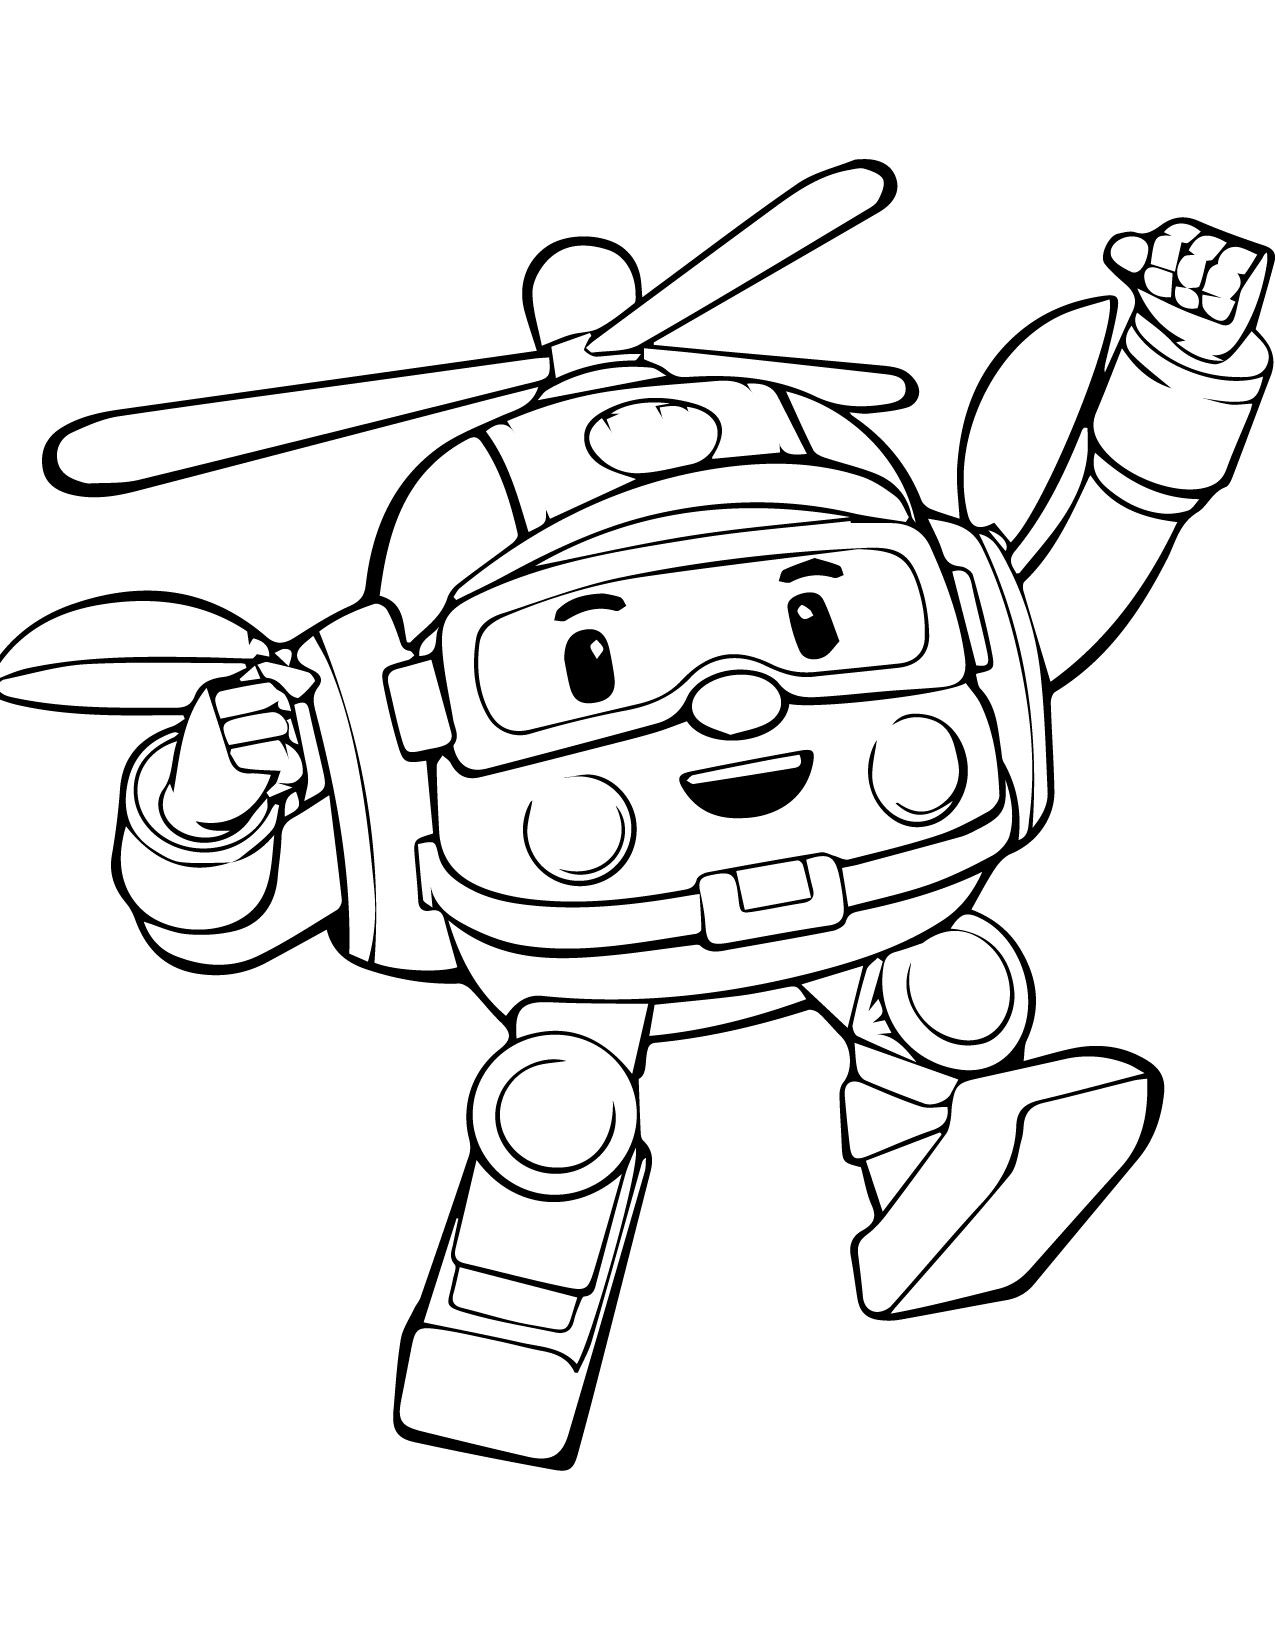 cool coloring page 06 09 2015 122554 01 check more at http www